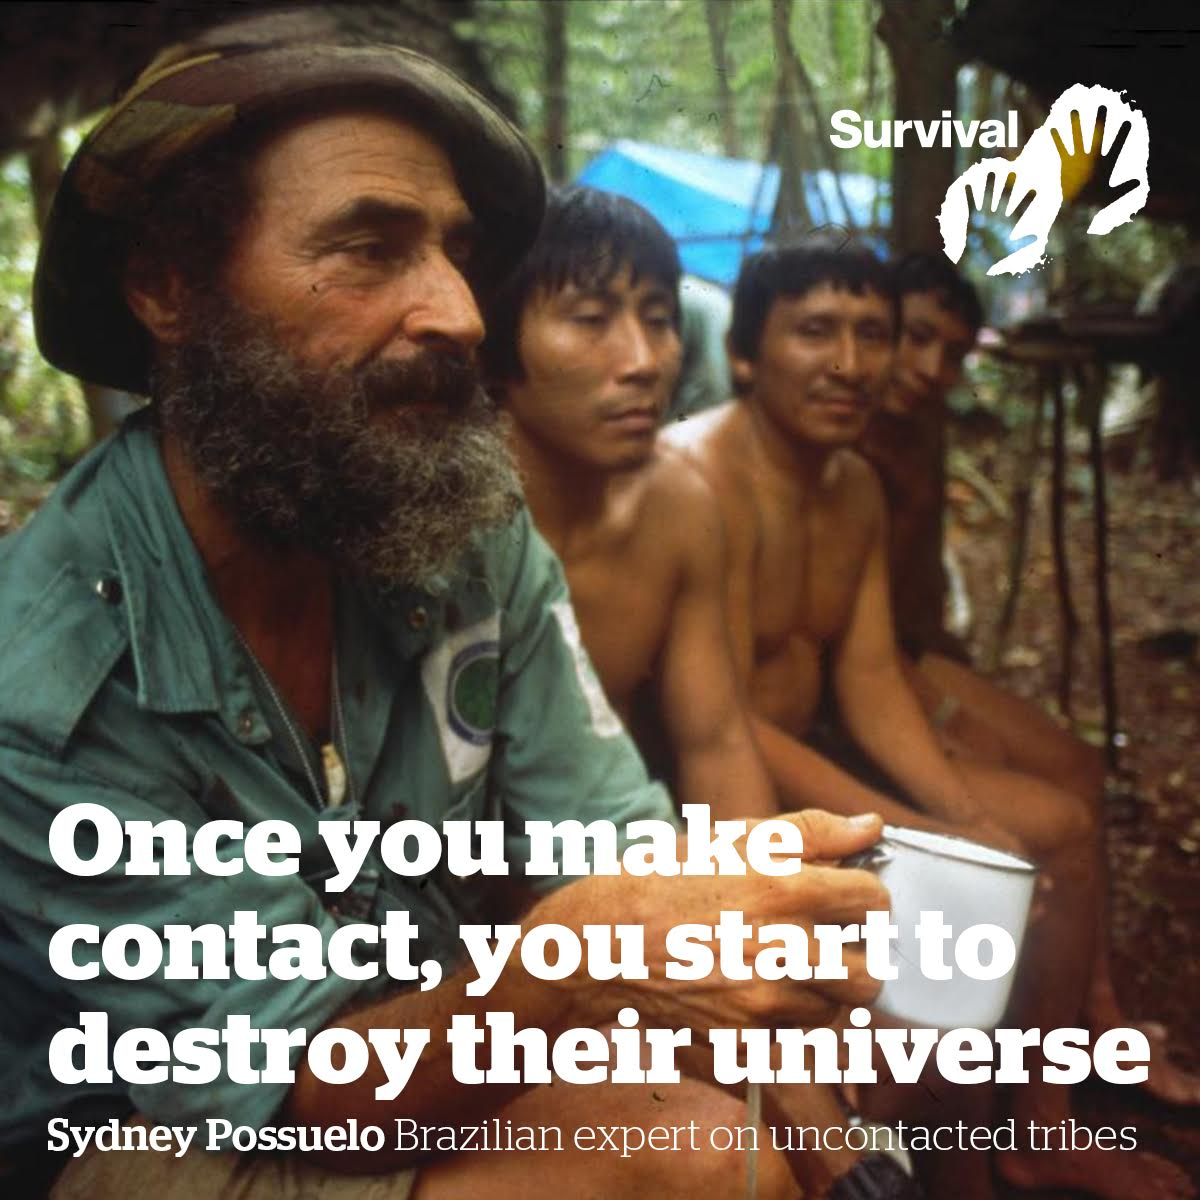 All uncontacted tribal peoples face catastrophe unless their land is protected. RT to show your support. https://t.co/fusQ8pYF6o